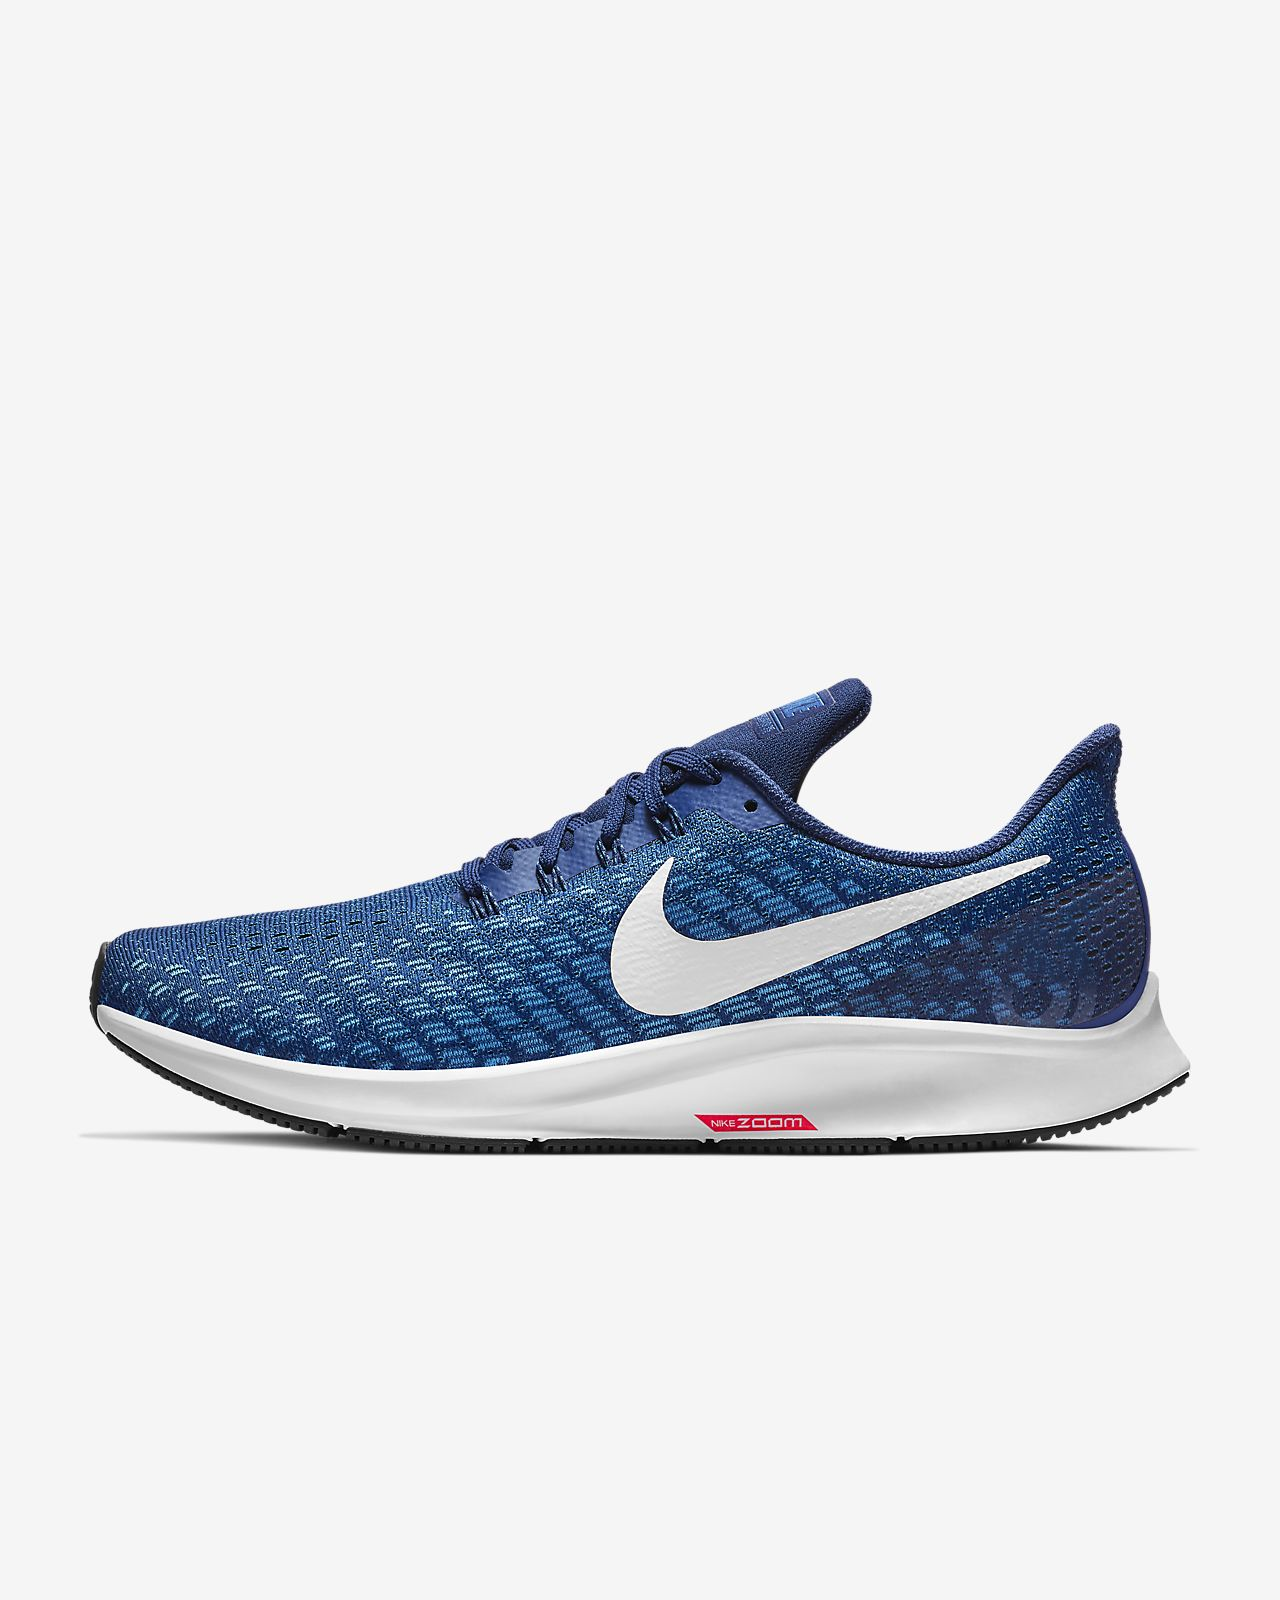 738e914568e7 Nike Air Zoom Pegasus 35 Men s Running Shoe. Nike.com CA